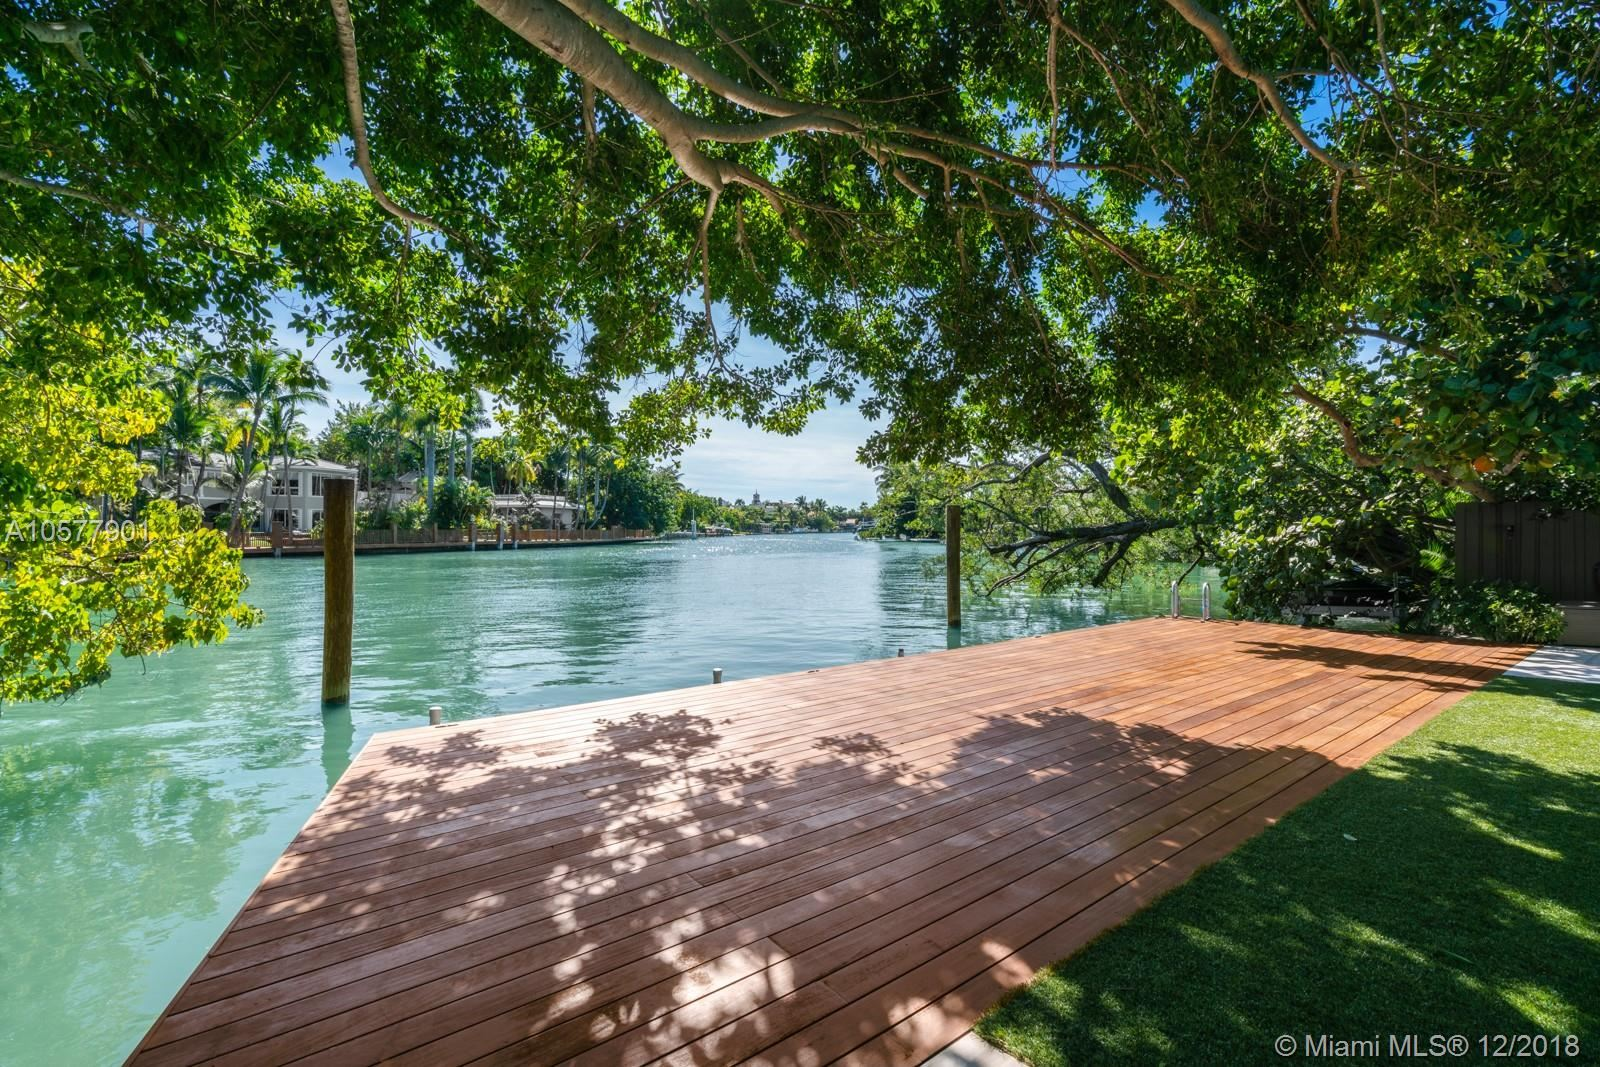 Photo 35 of Listing MLS a10577901 in 5045 Lakeview Drive Miami Beach FL 33140